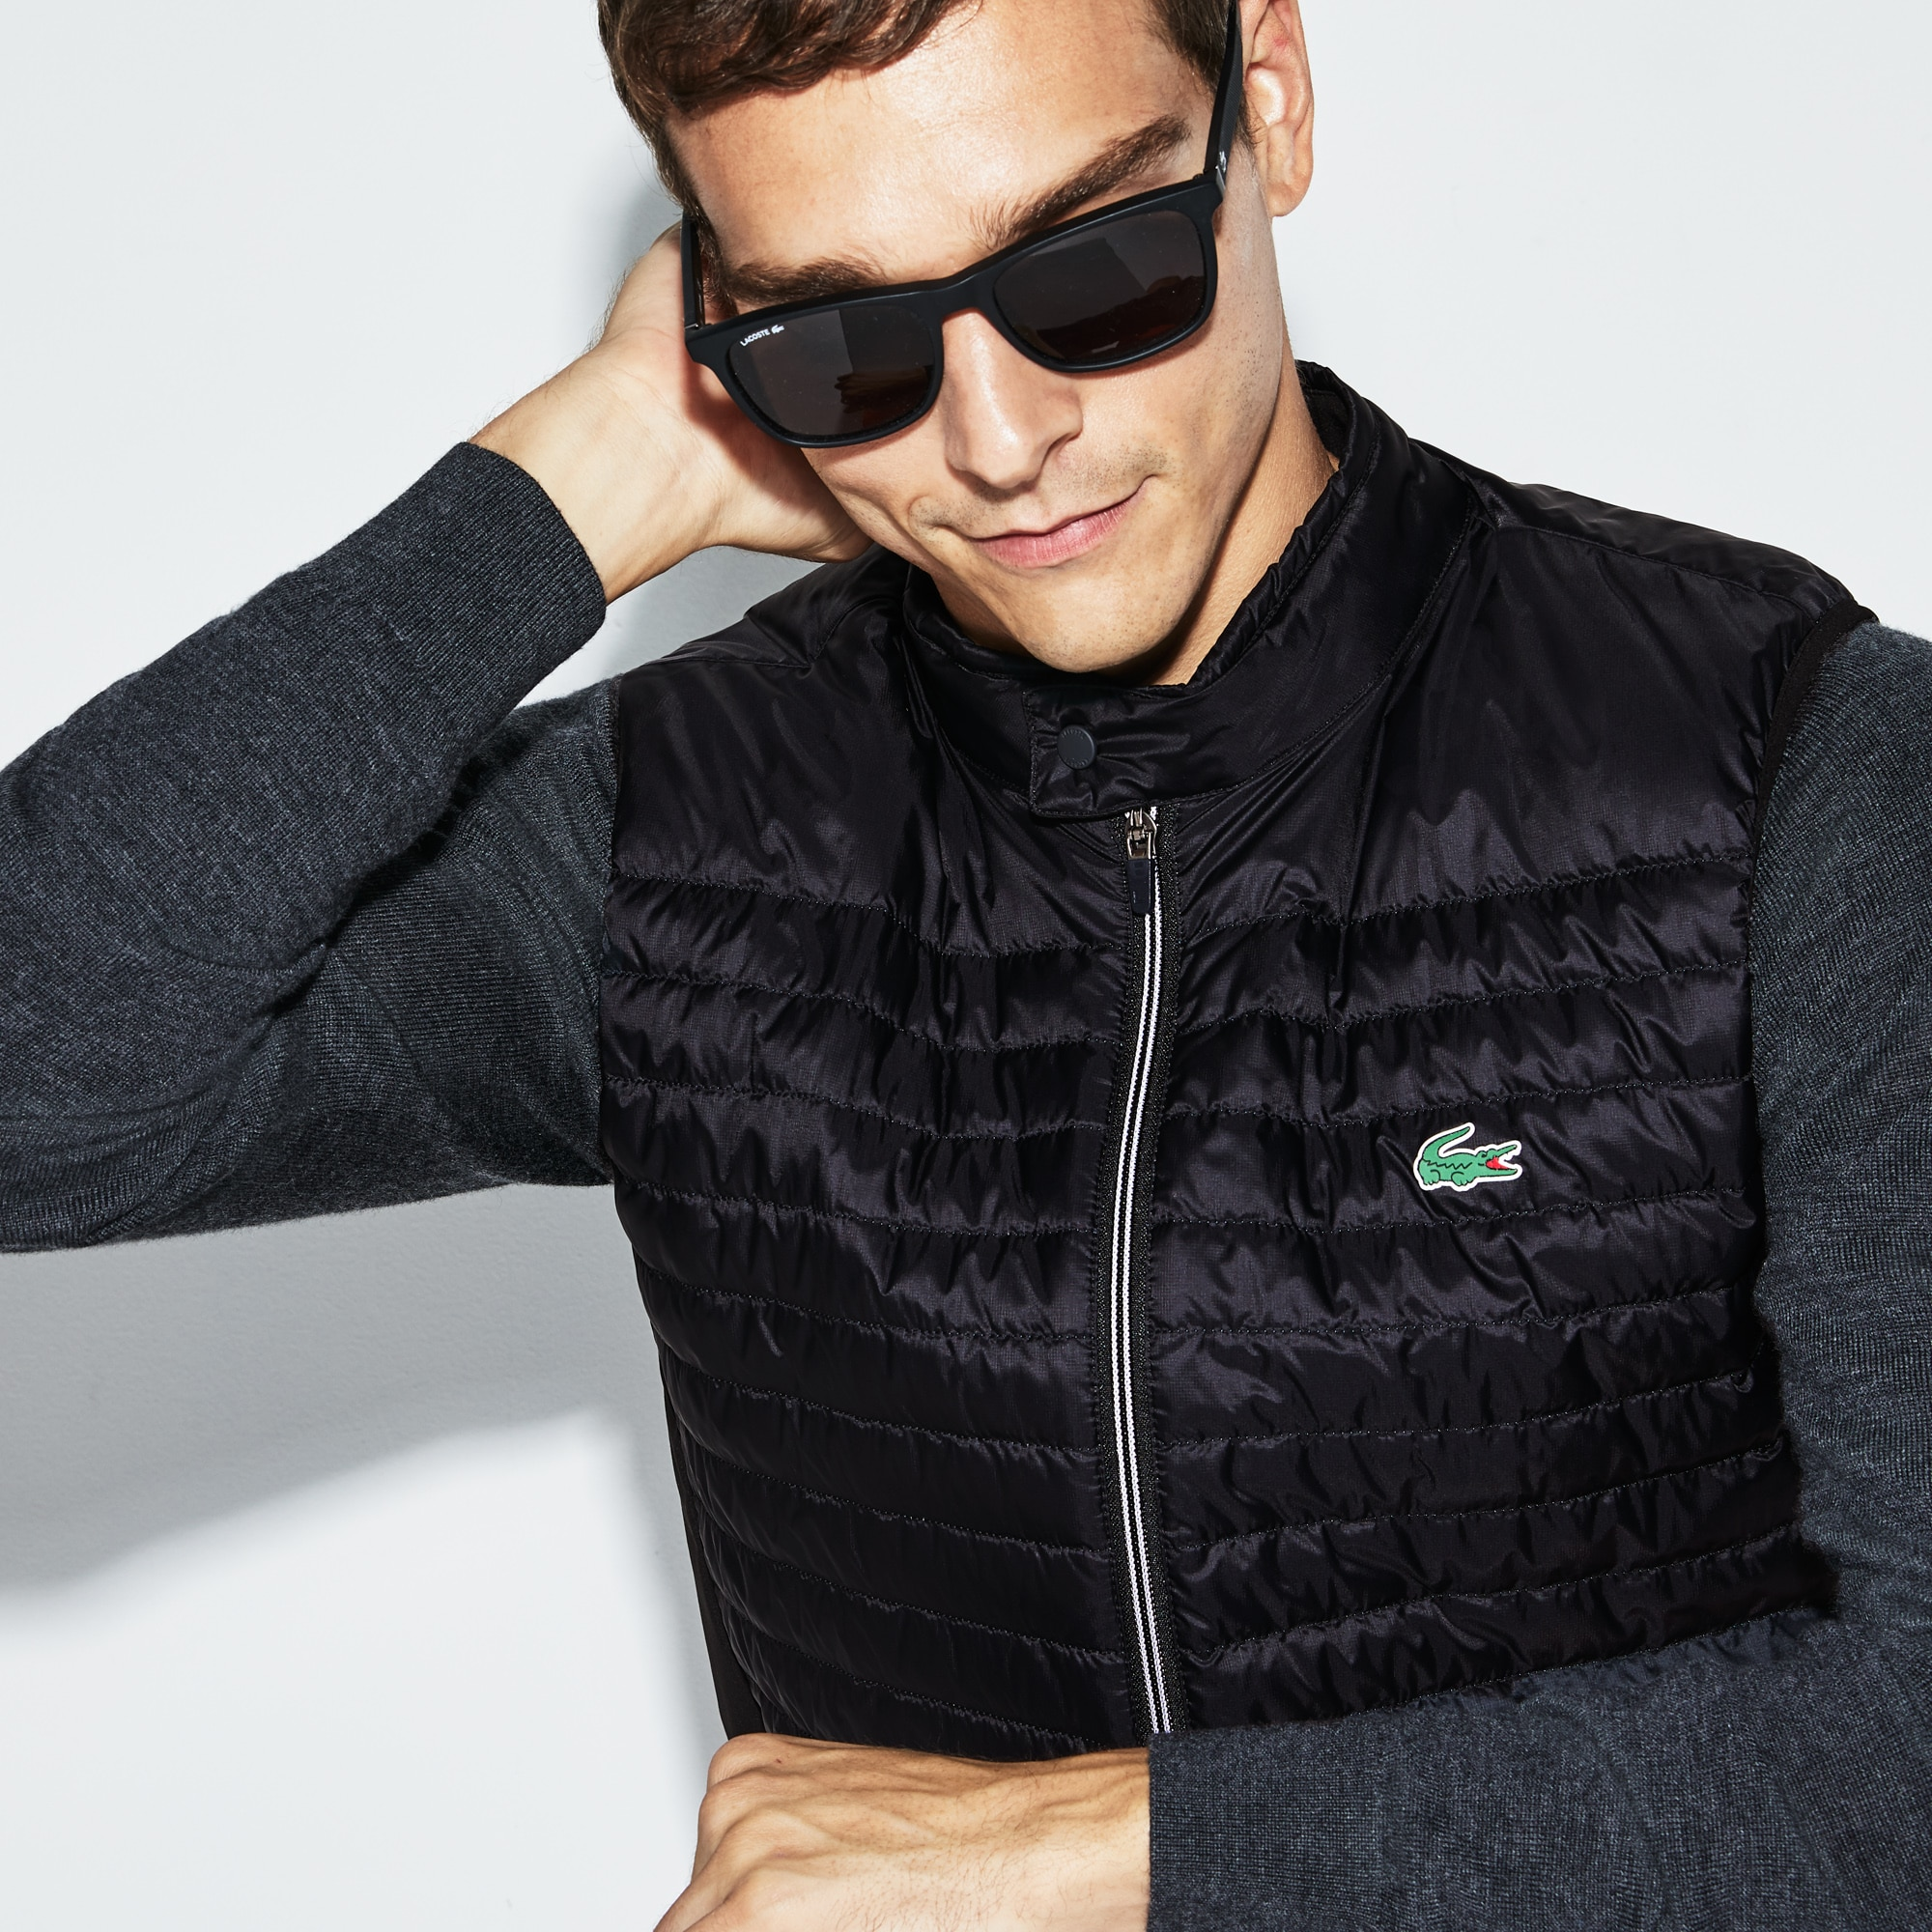 26a84d4a2 Men's Jackets and Coats   Lacoste Outerwear   LACOSTE